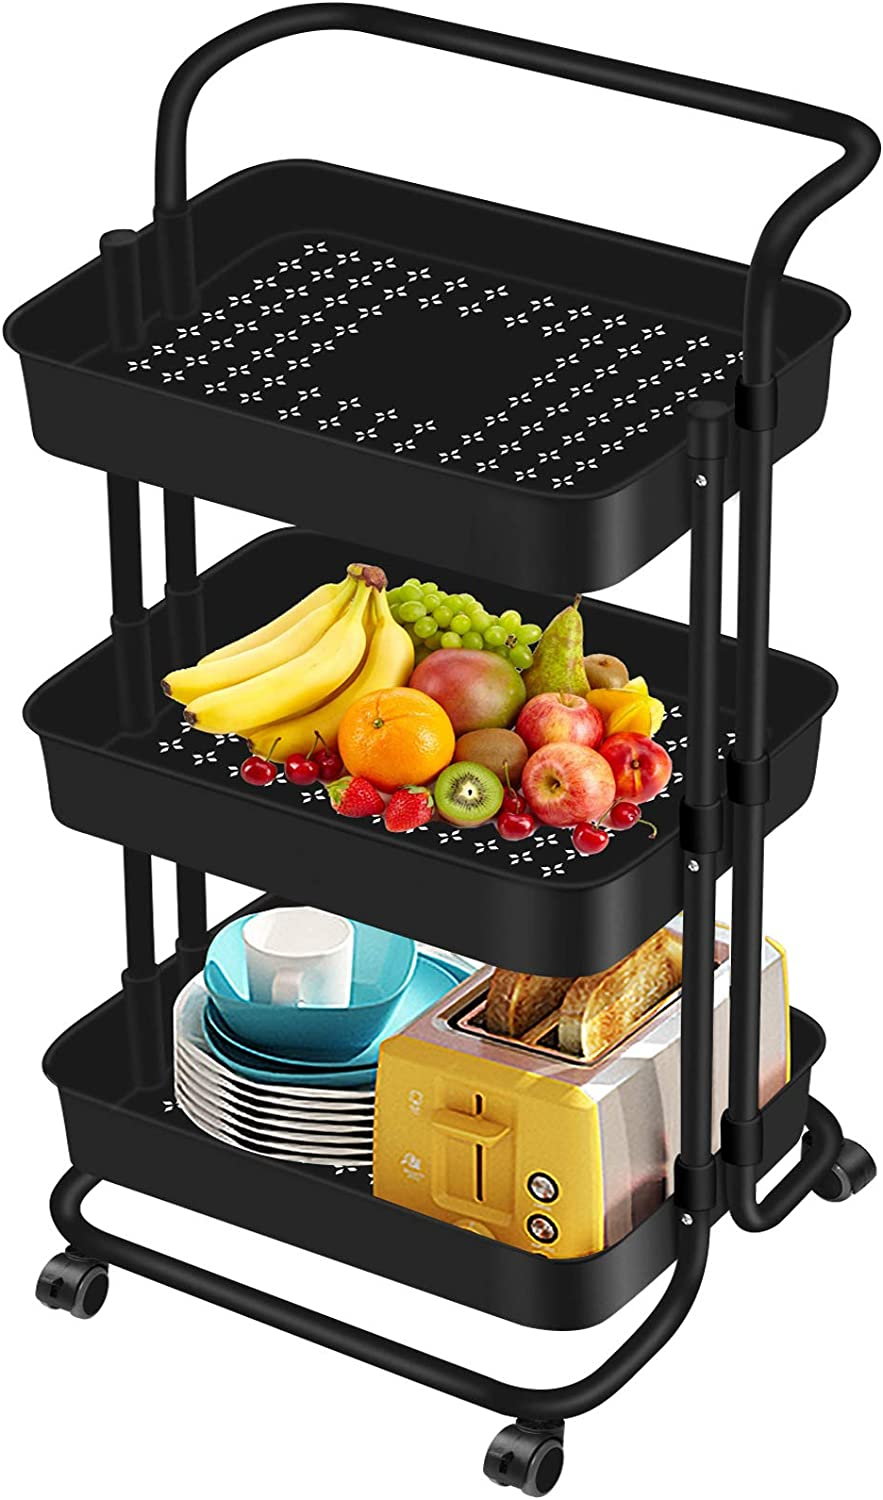 AROVA 3 Tier Rolling Cart, Premium Rolling Storage Cart for Office, Rolling Utility Cart with Wheels for Home Storage Organization, as Craft Cart & Art Cart (Black)